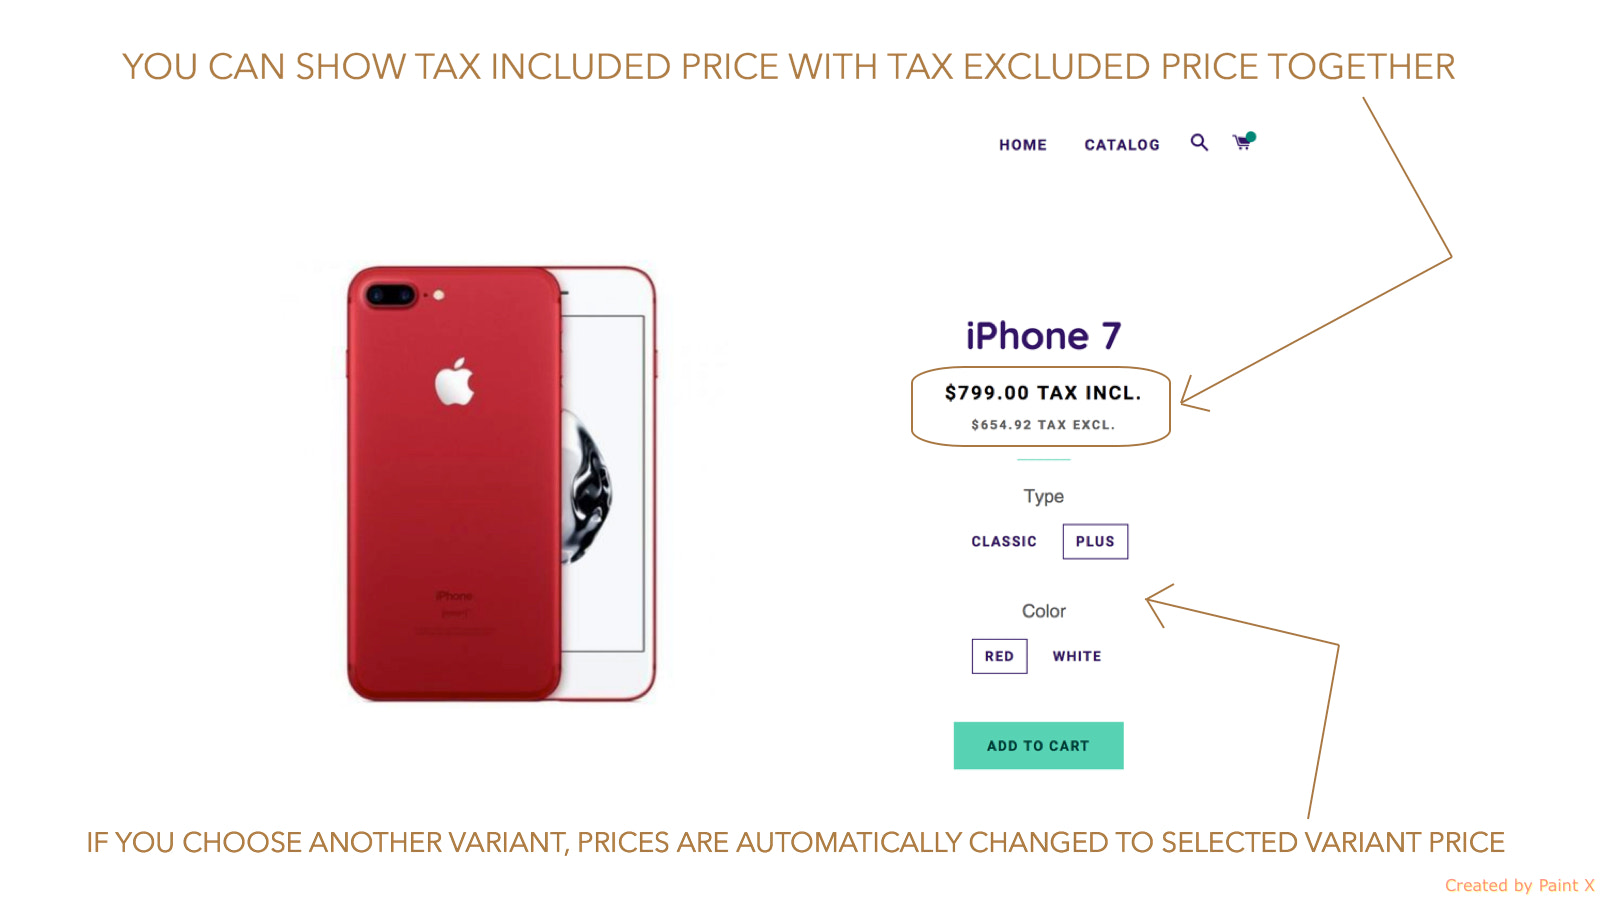 Vat included and Vat excluded price in product detail